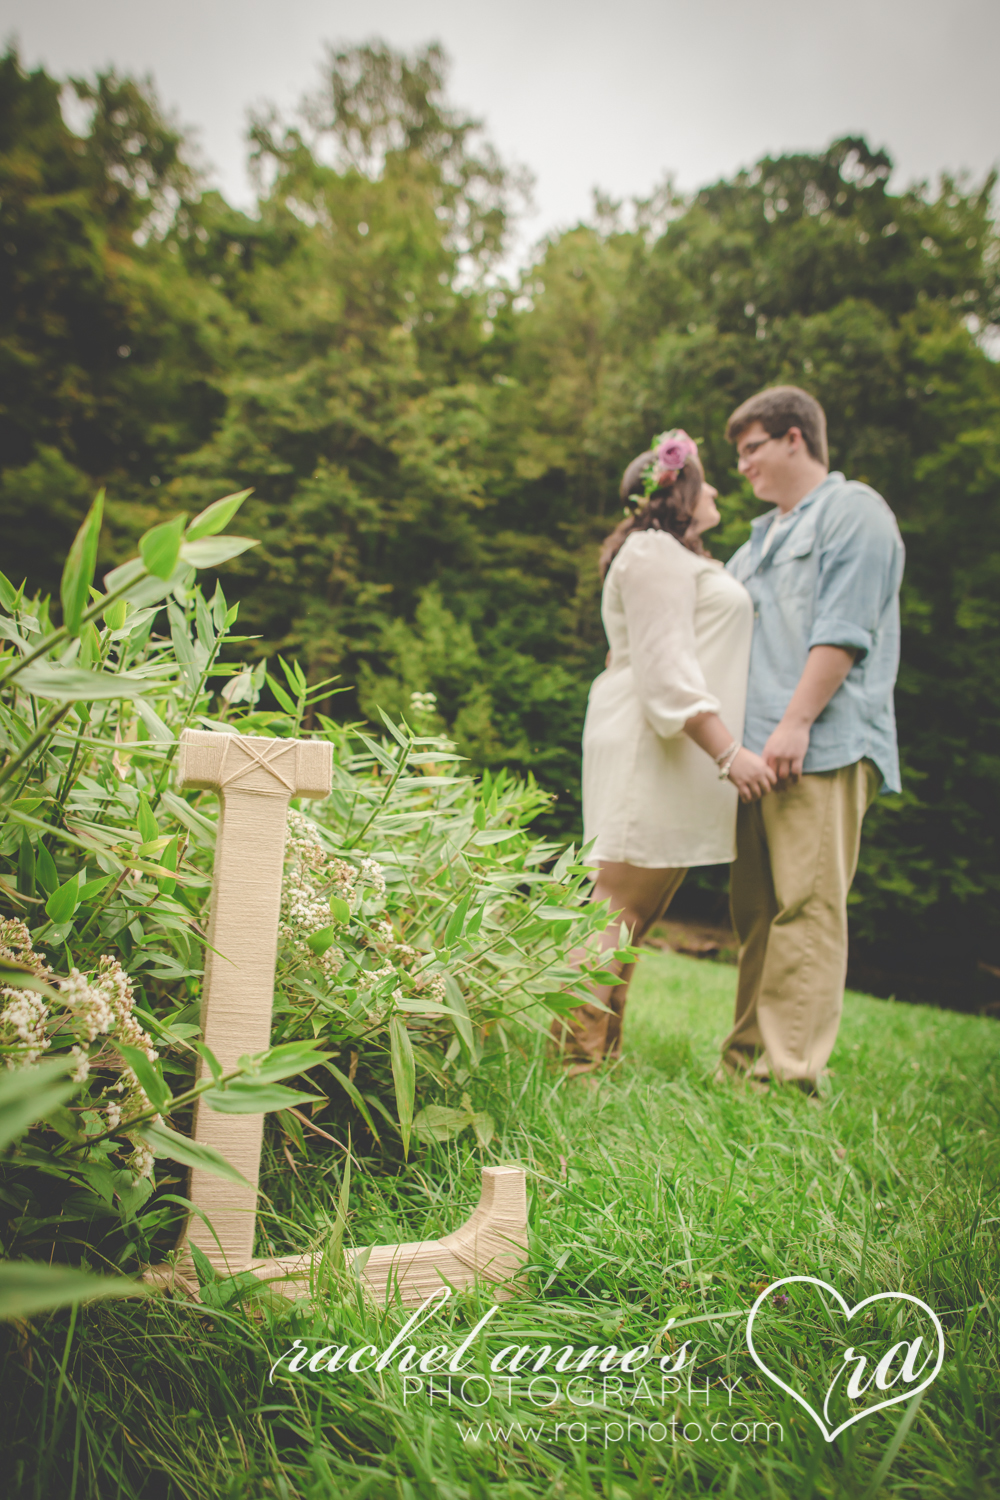 021-SSL-CLEARFIELD ENGAGEMENT PHOTOS.jpg